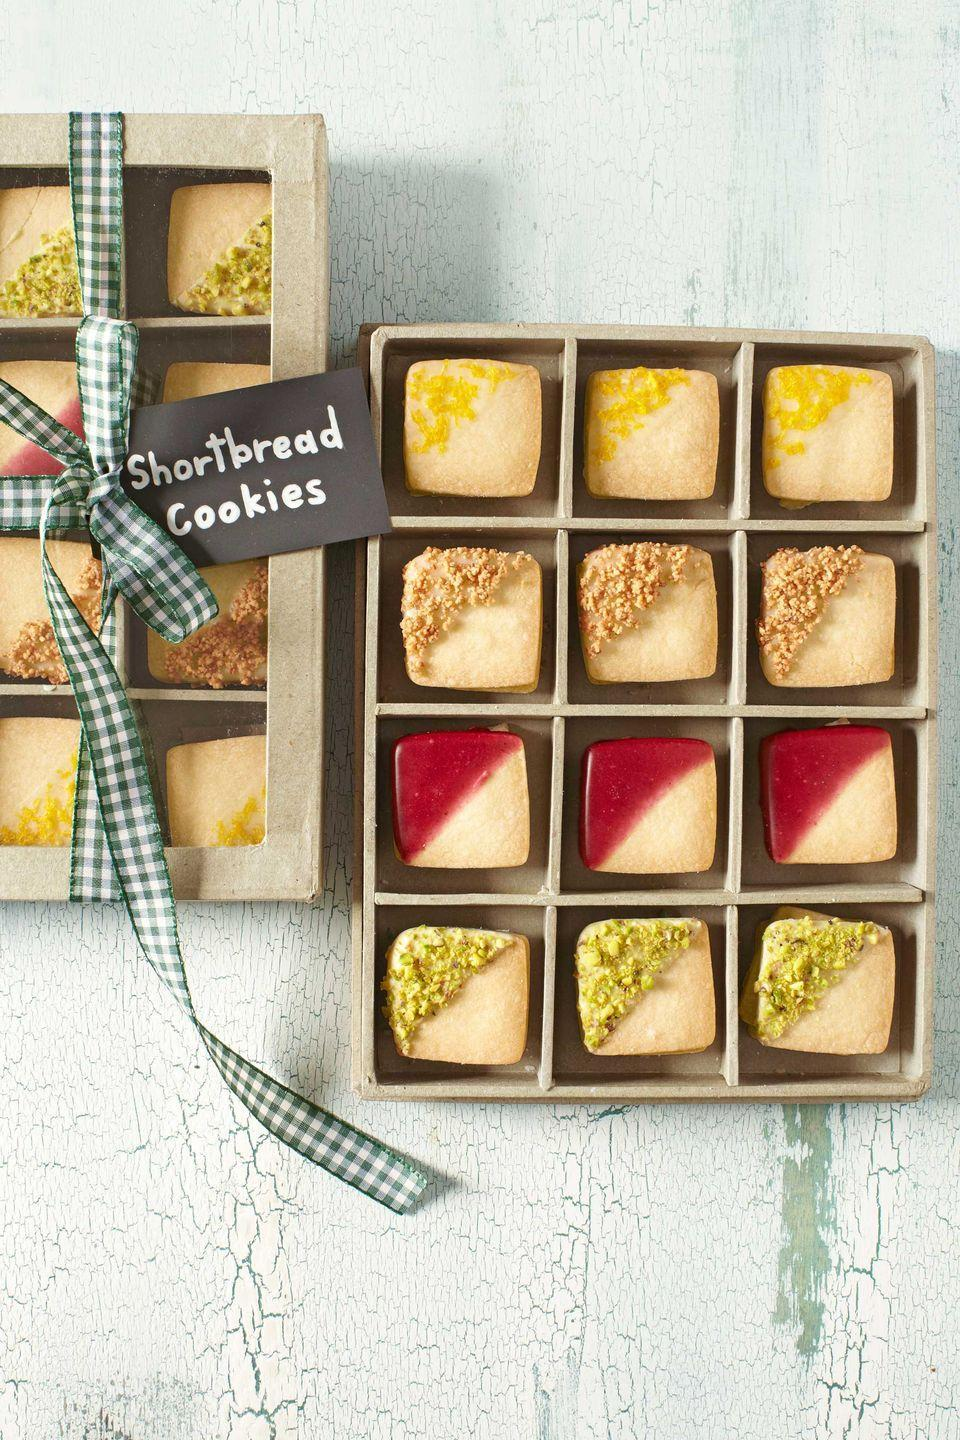 "<p>Displayed in a clear-topped checkerboard box, bite-size shortbread cookies—dipped in fruity glazes, chopped nuts, and citrus zest—pass for tiny works of art. Bonus: The sturdy container can later hold other petite treasures like jewelry or sewing notions.</p><p><strong><a href=""https://www.countryliving.com/food-drinks/recipes/a4224/shortbread-cookies-recipe-clv1212/"" rel=""nofollow noopener"" target=""_blank"" data-ylk=""slk:Get the recipe."" class=""link rapid-noclick-resp"">Get the recipe.</a></strong></p>"